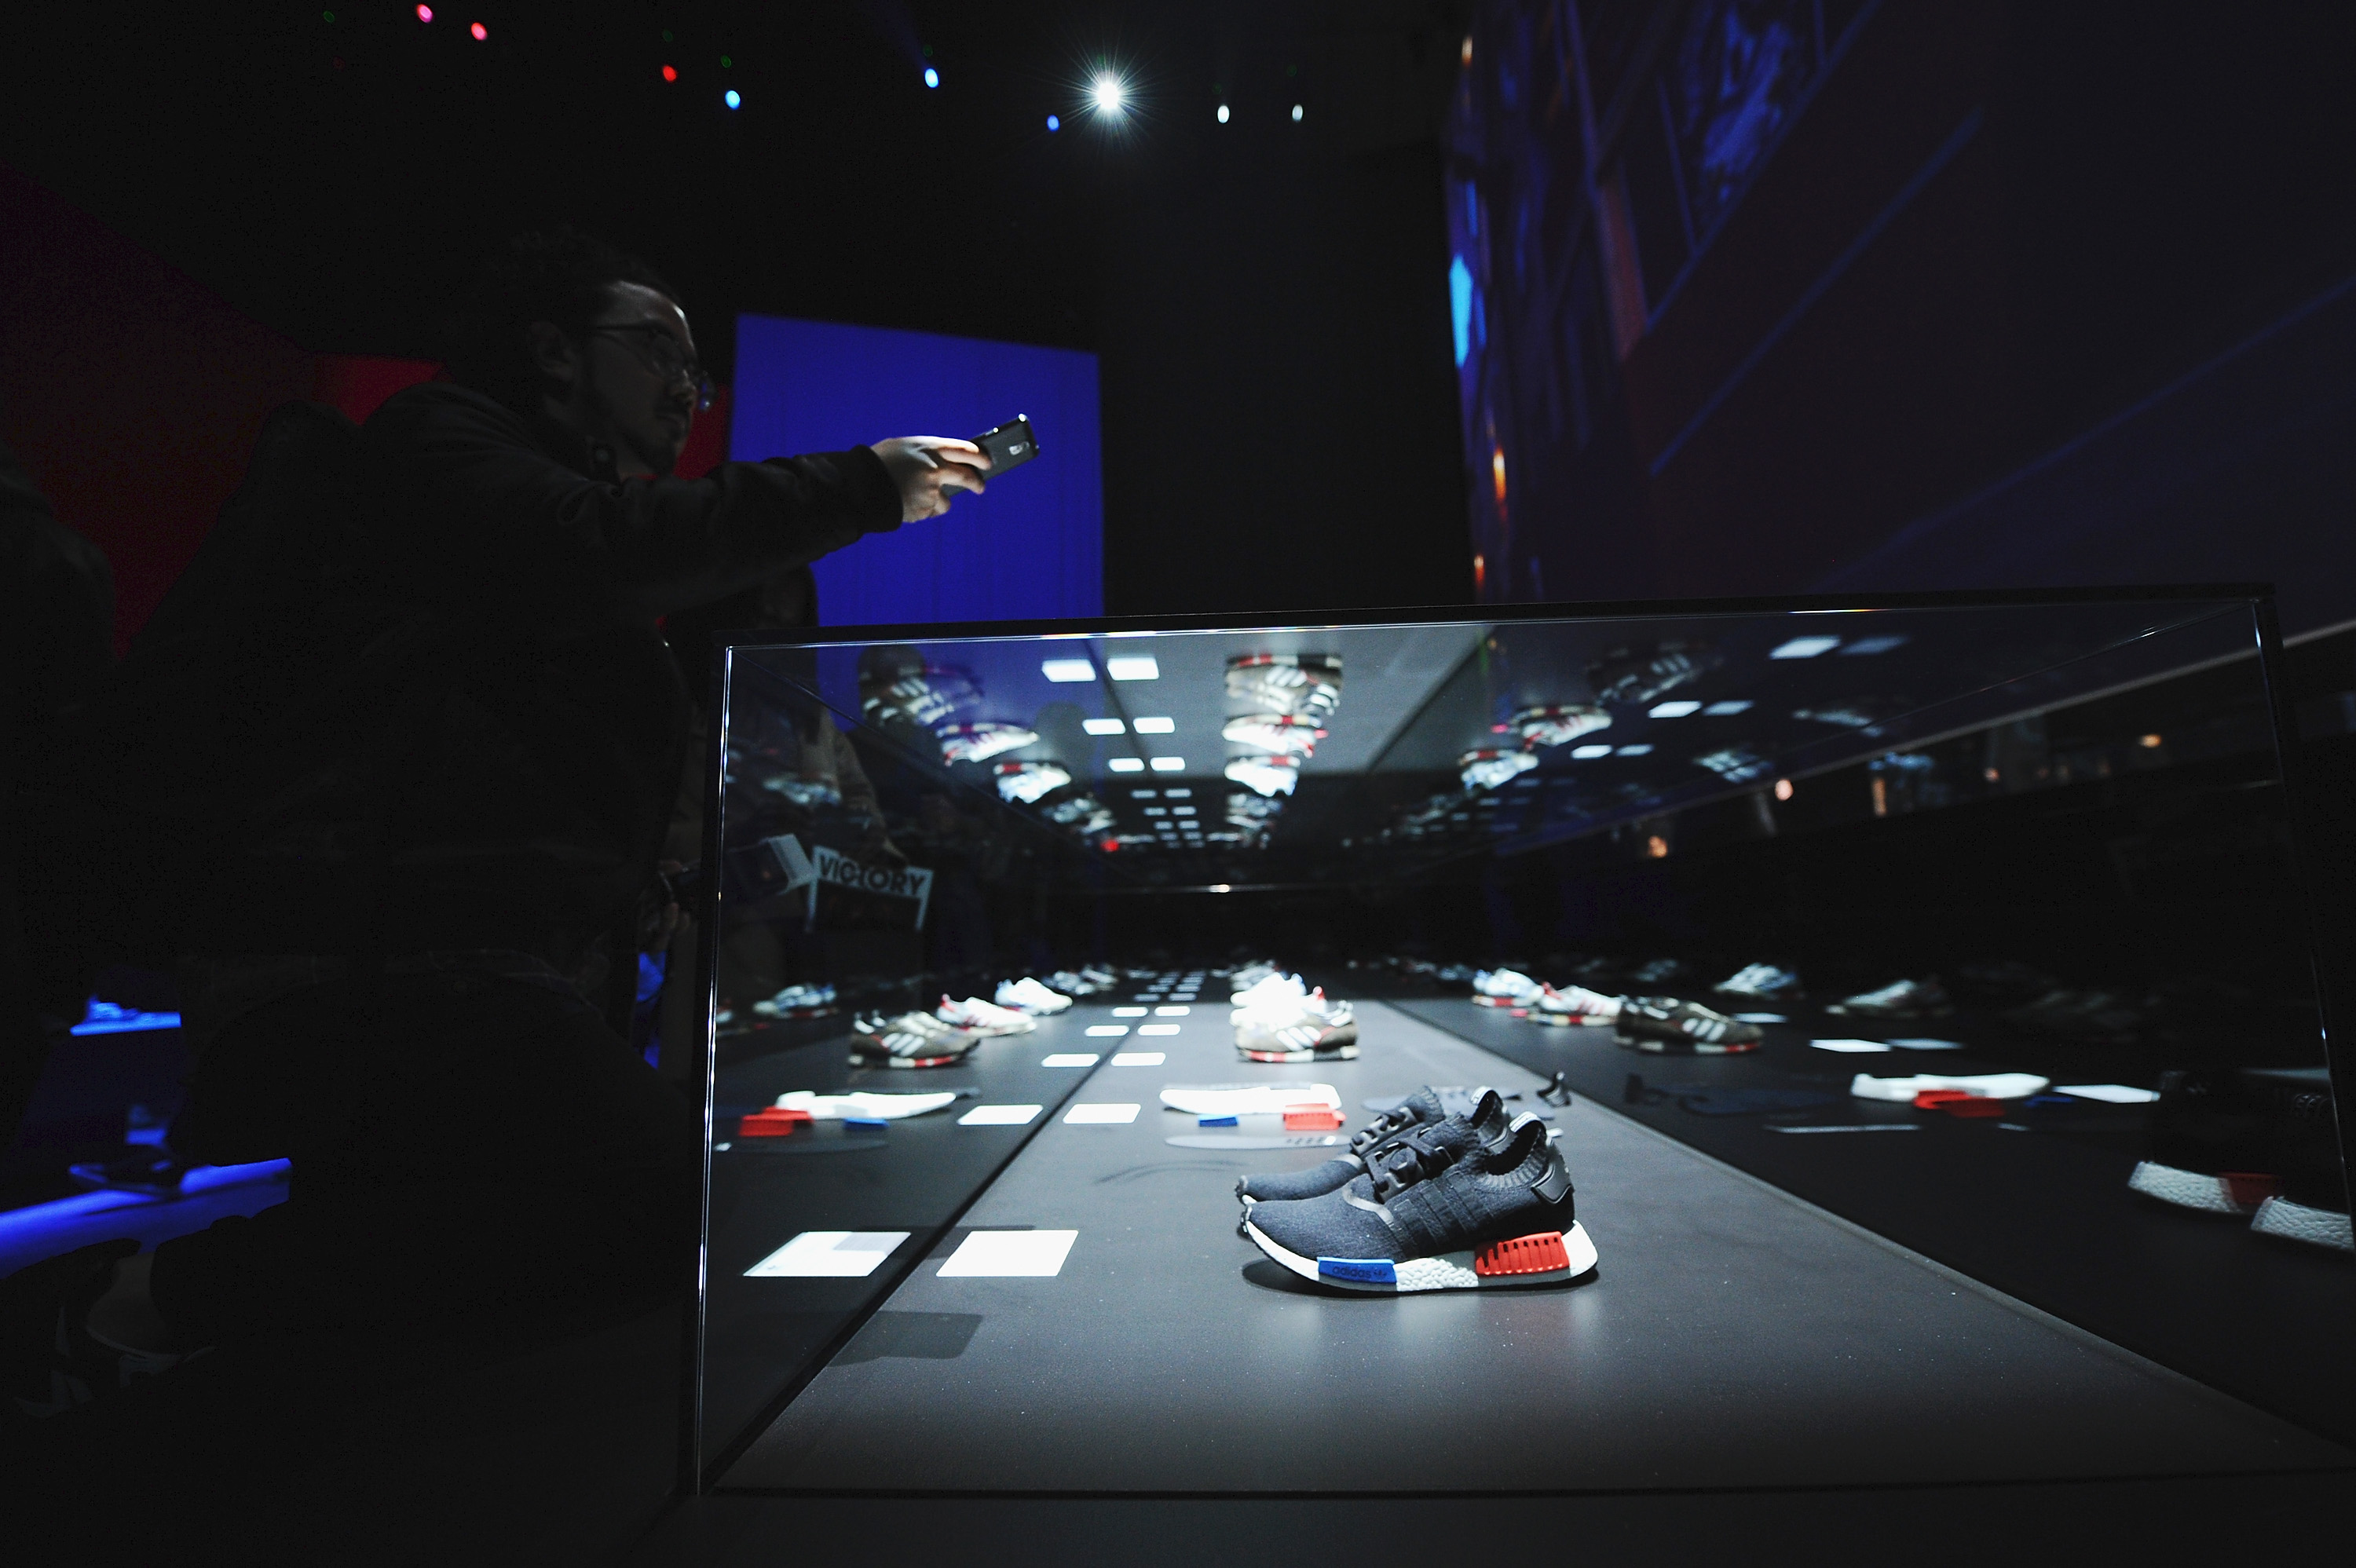 NEW YORK, NY - DECEMBER 09: A general view of atmosphere at the adidas Originals NMD global unveiling at the 69th Regiment Armory on December 9, 2015 in New York City. #NMD, #adidasOriginals (Photo by Ilya S. Savenok/Getty Images for adidas)